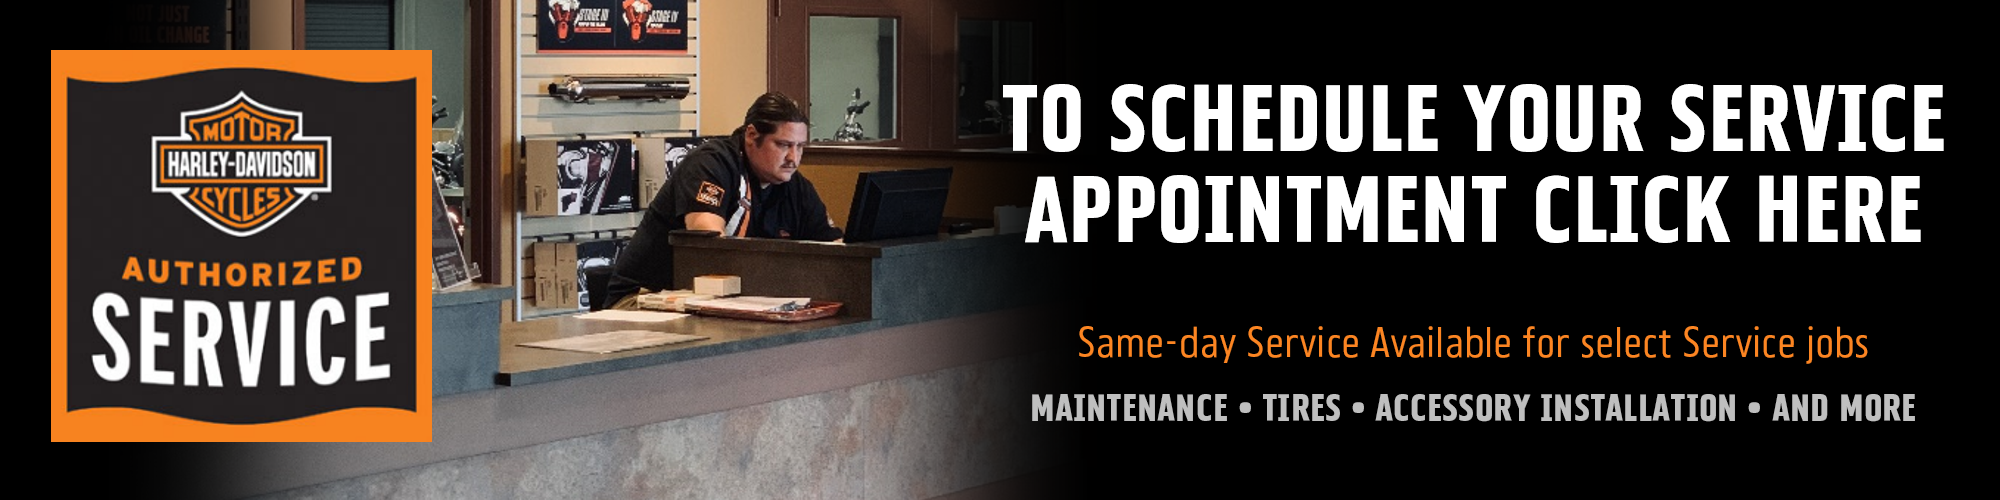 chedule Your Next Service Appointment Today At H-D of Macon